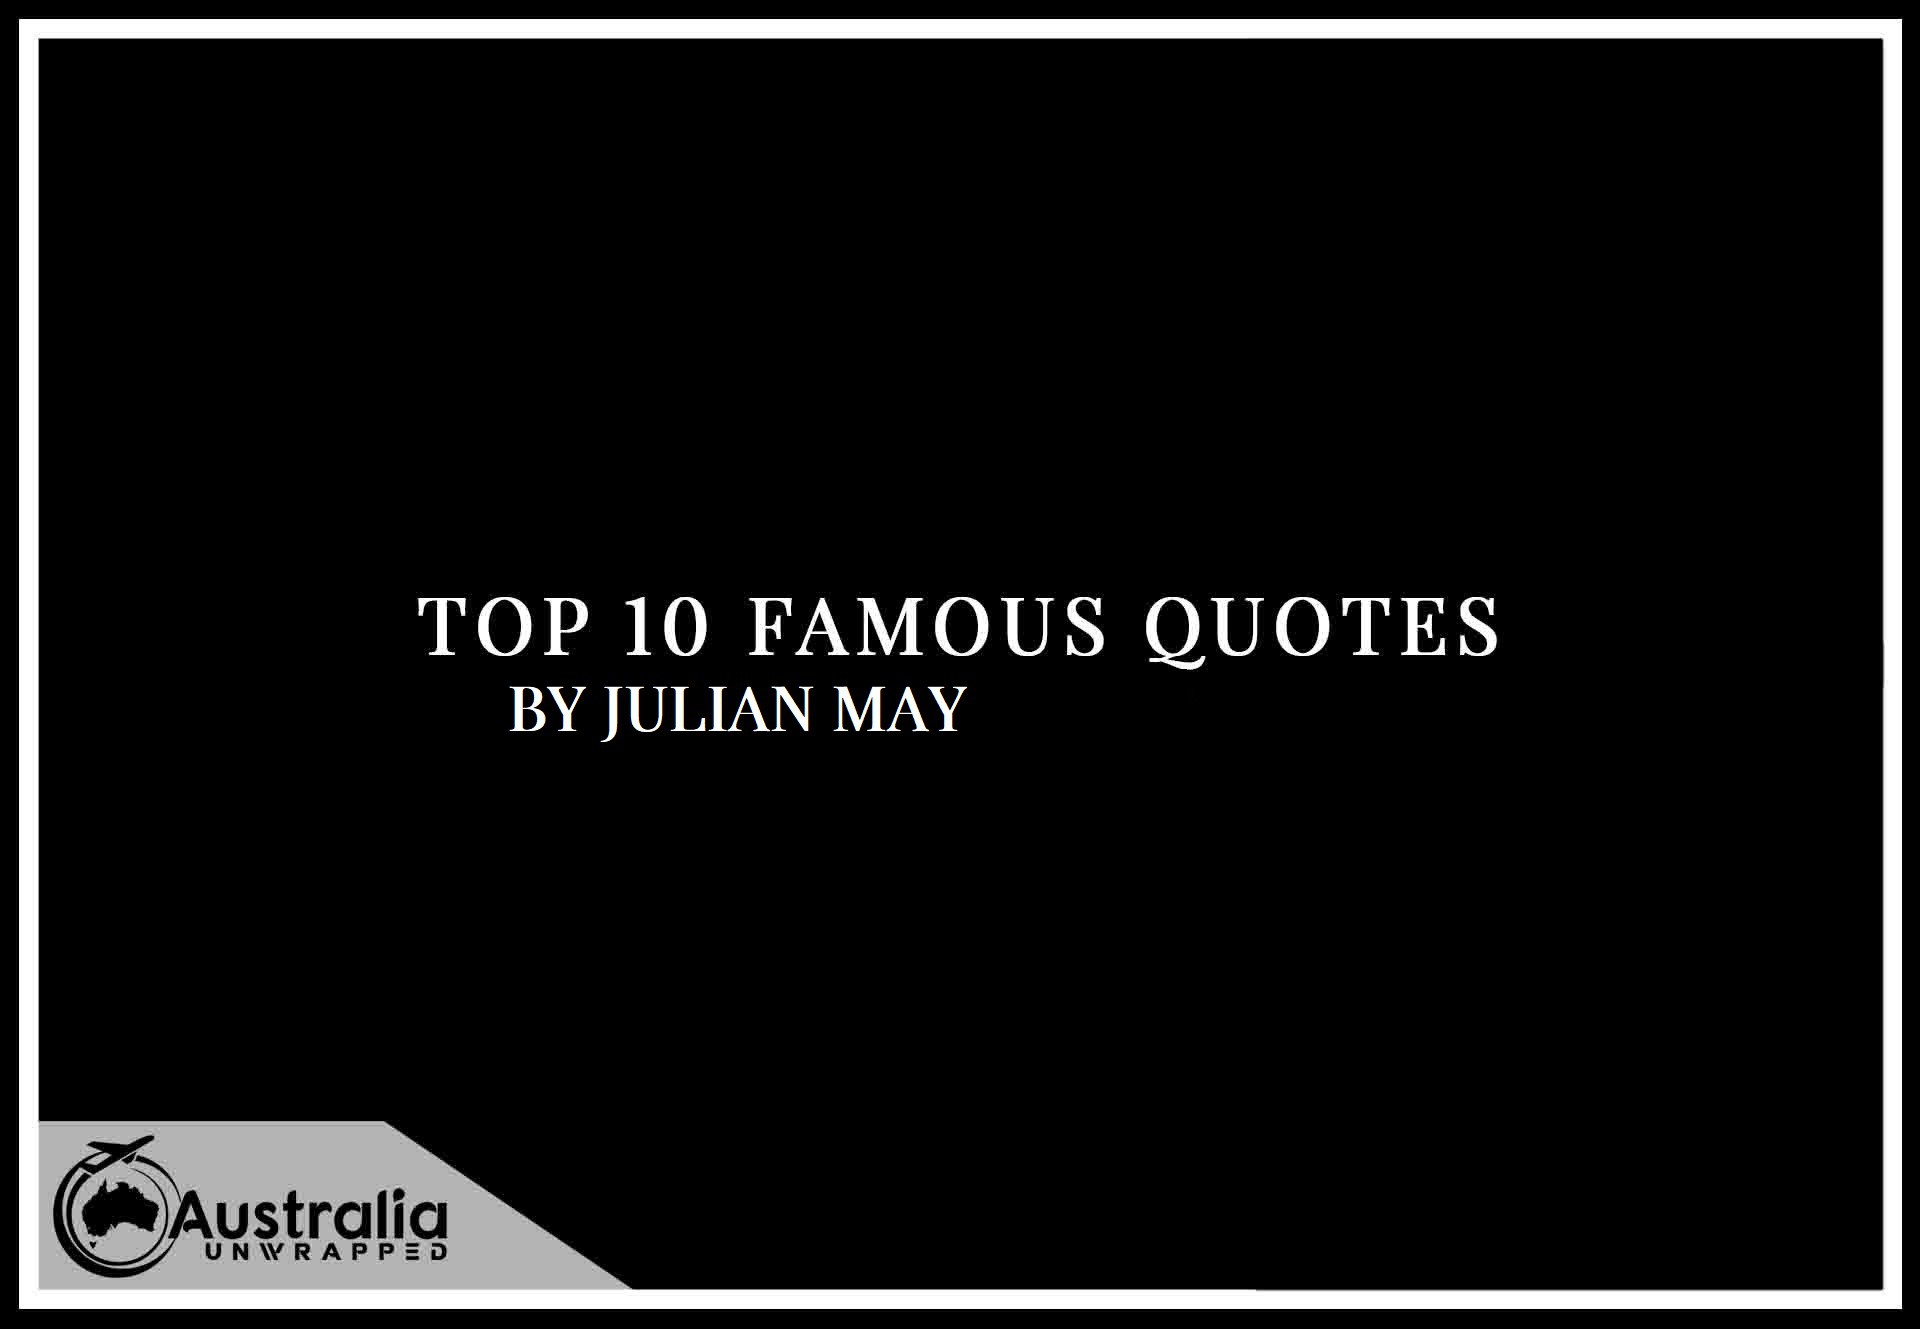 Top 10 Famous Quotes by Author Julian May